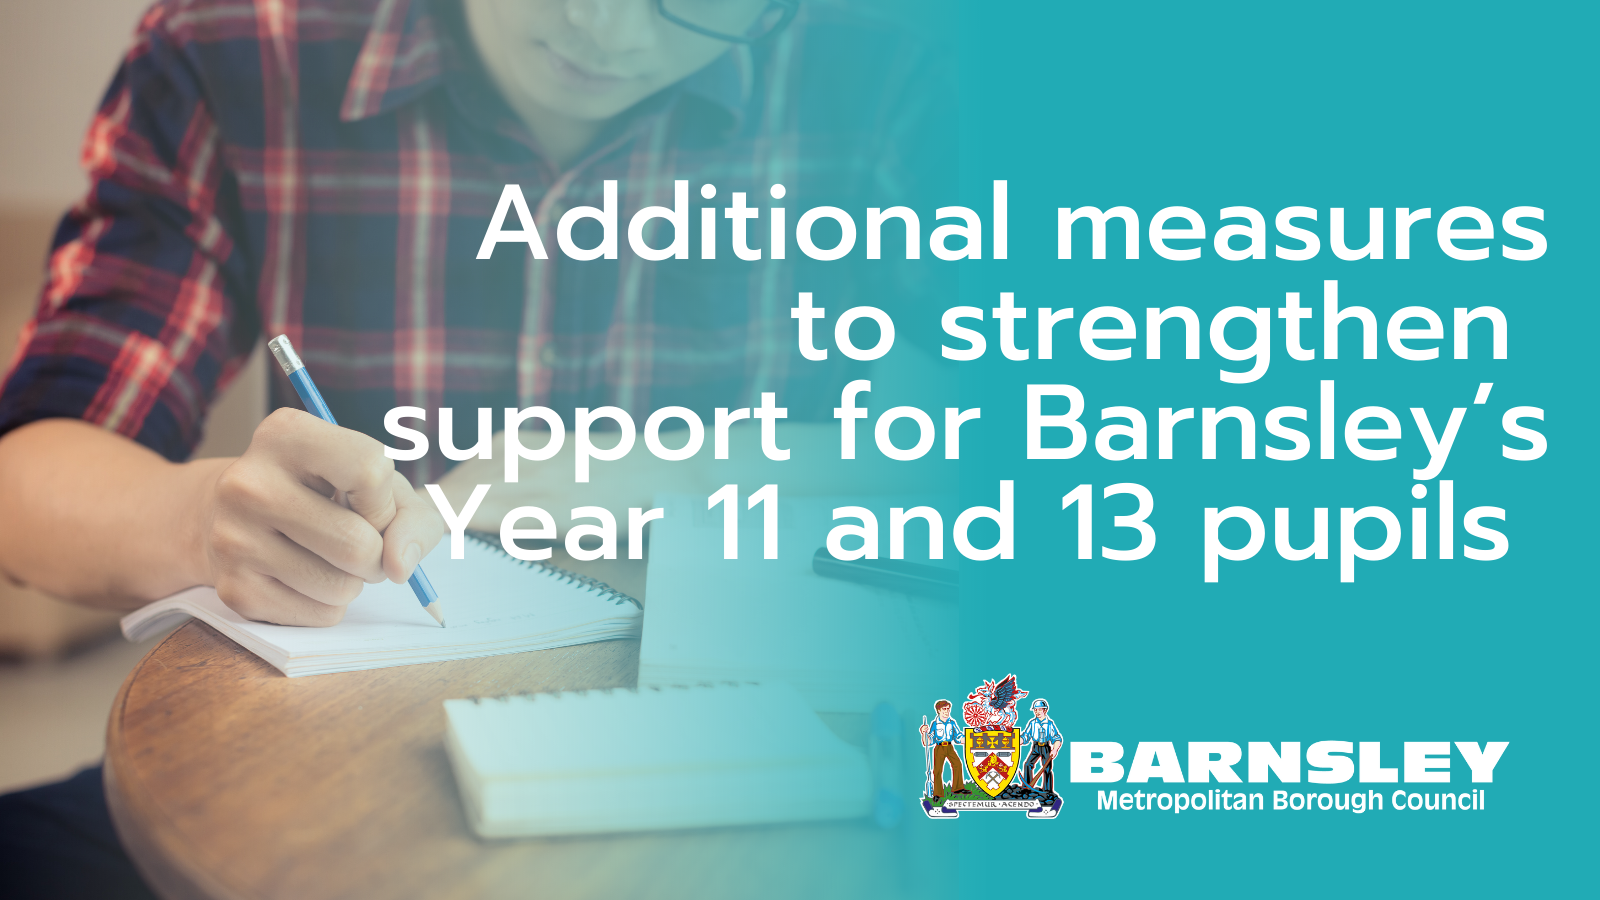 Additional measures to strengthen support for Barnsley's Year 11 and 13 pupils with image of school pupil writing